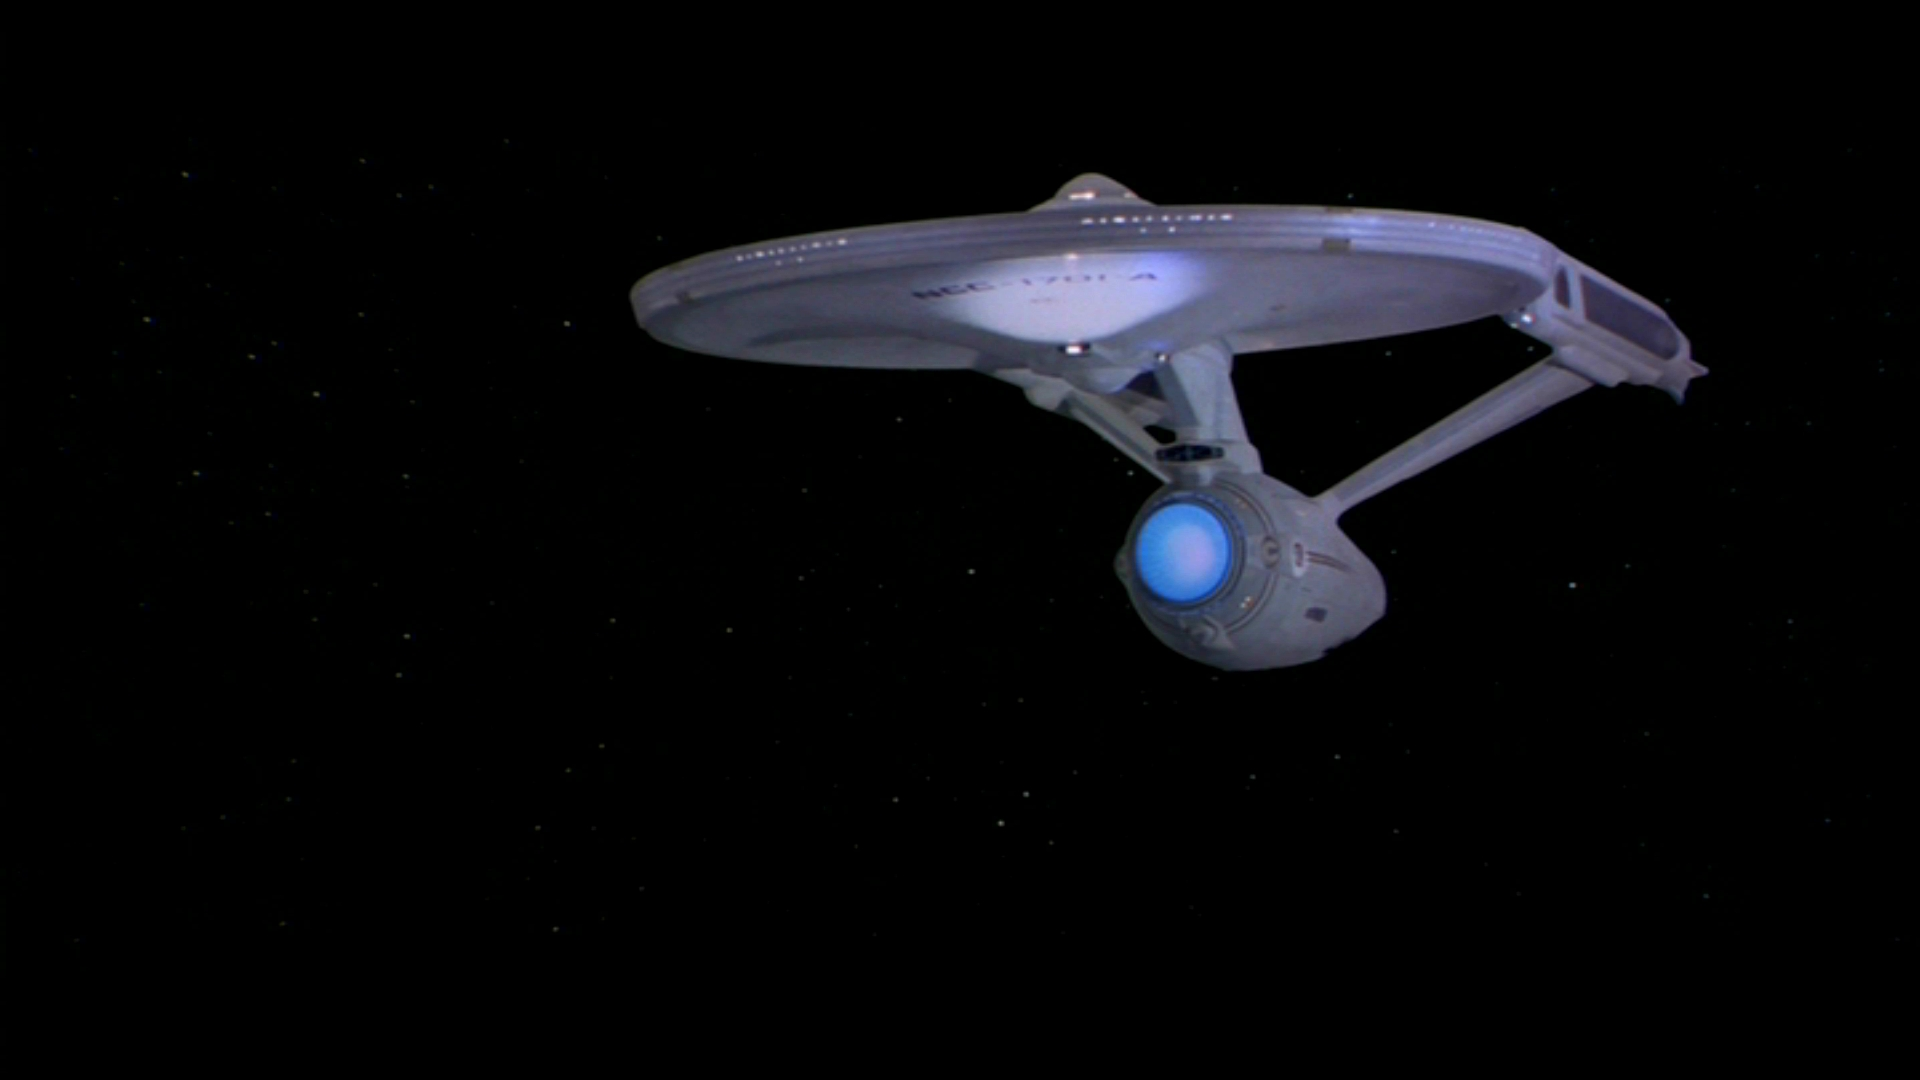 android star trek wallpaper 1920x1080 - photo #41